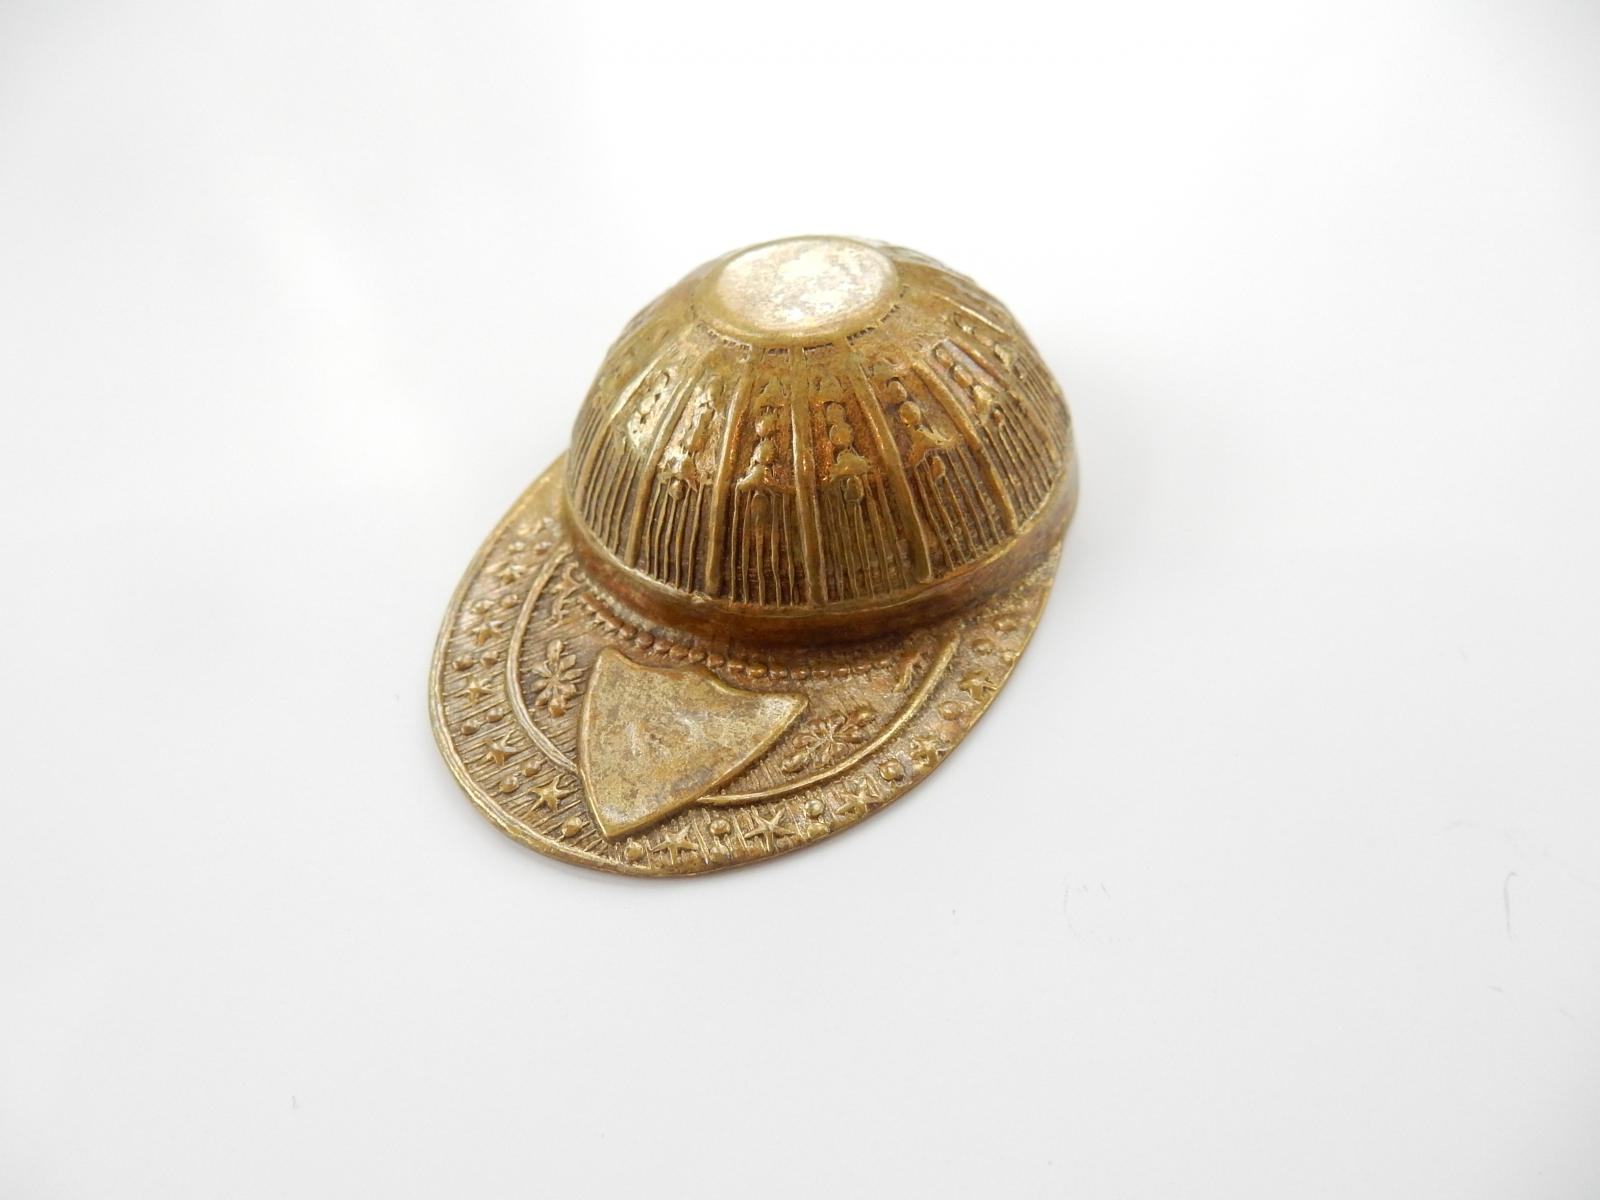 Photo of Brass Caddy Spoon in Form of Jockey Cap